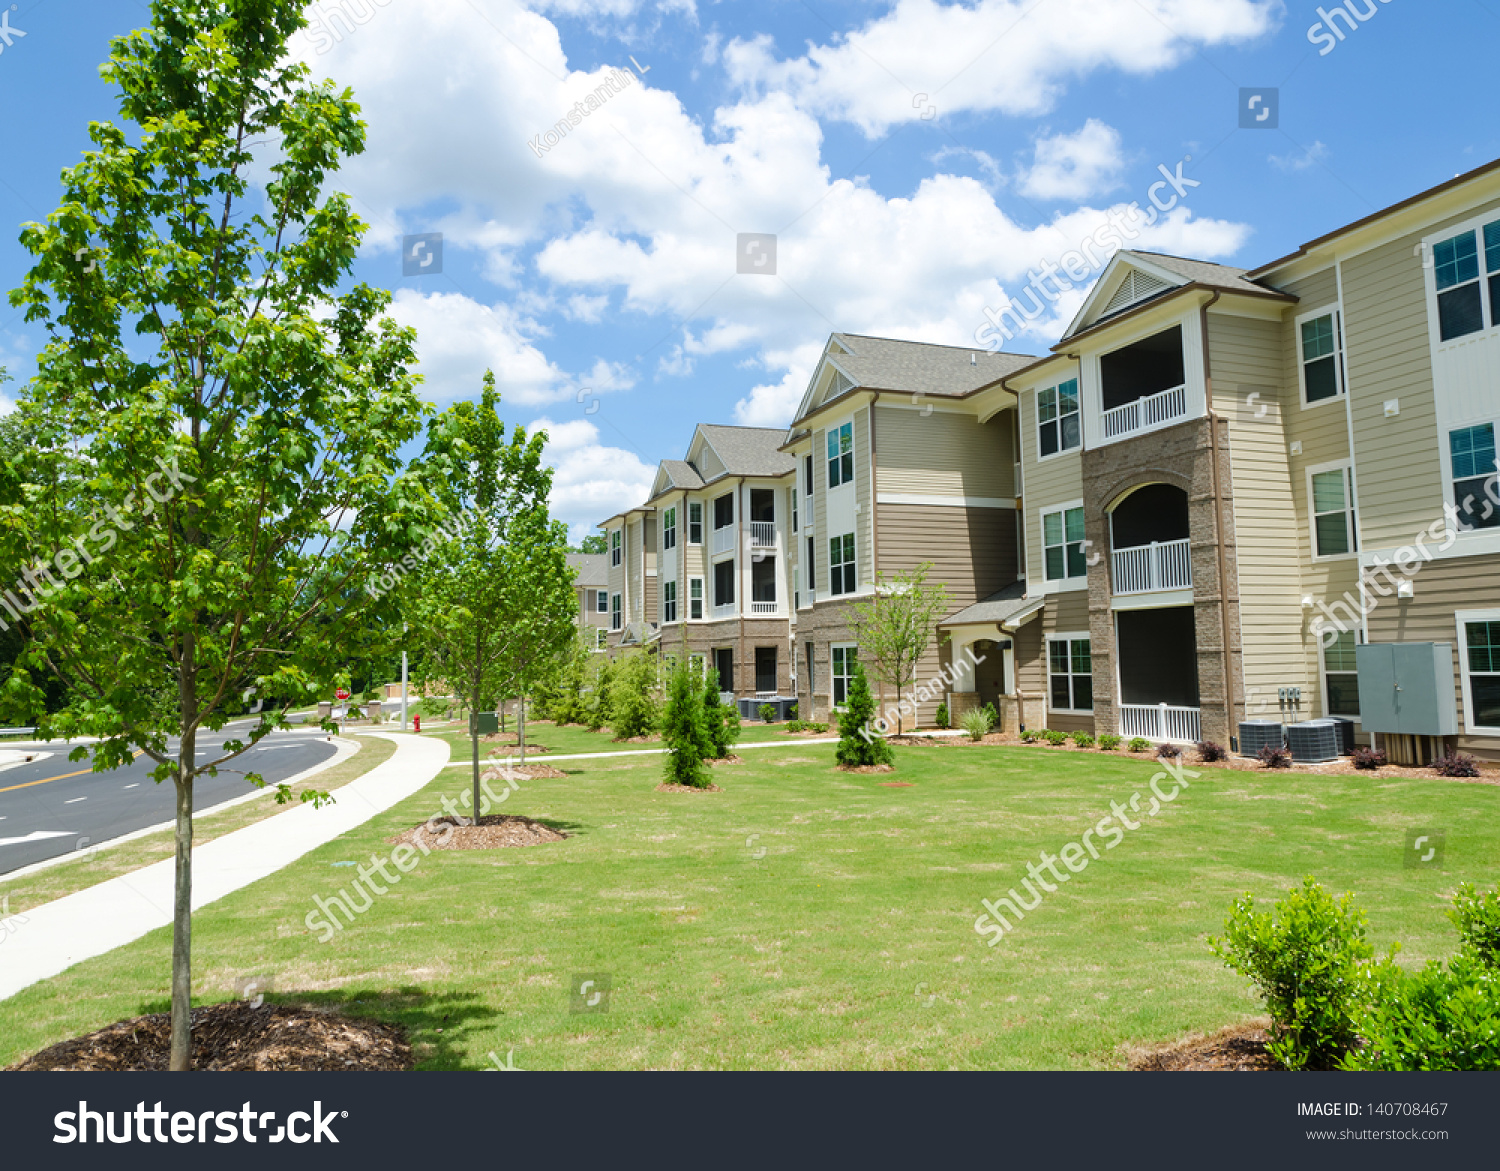 Typical Apartment Complex Building In Suburban Area Stock ...